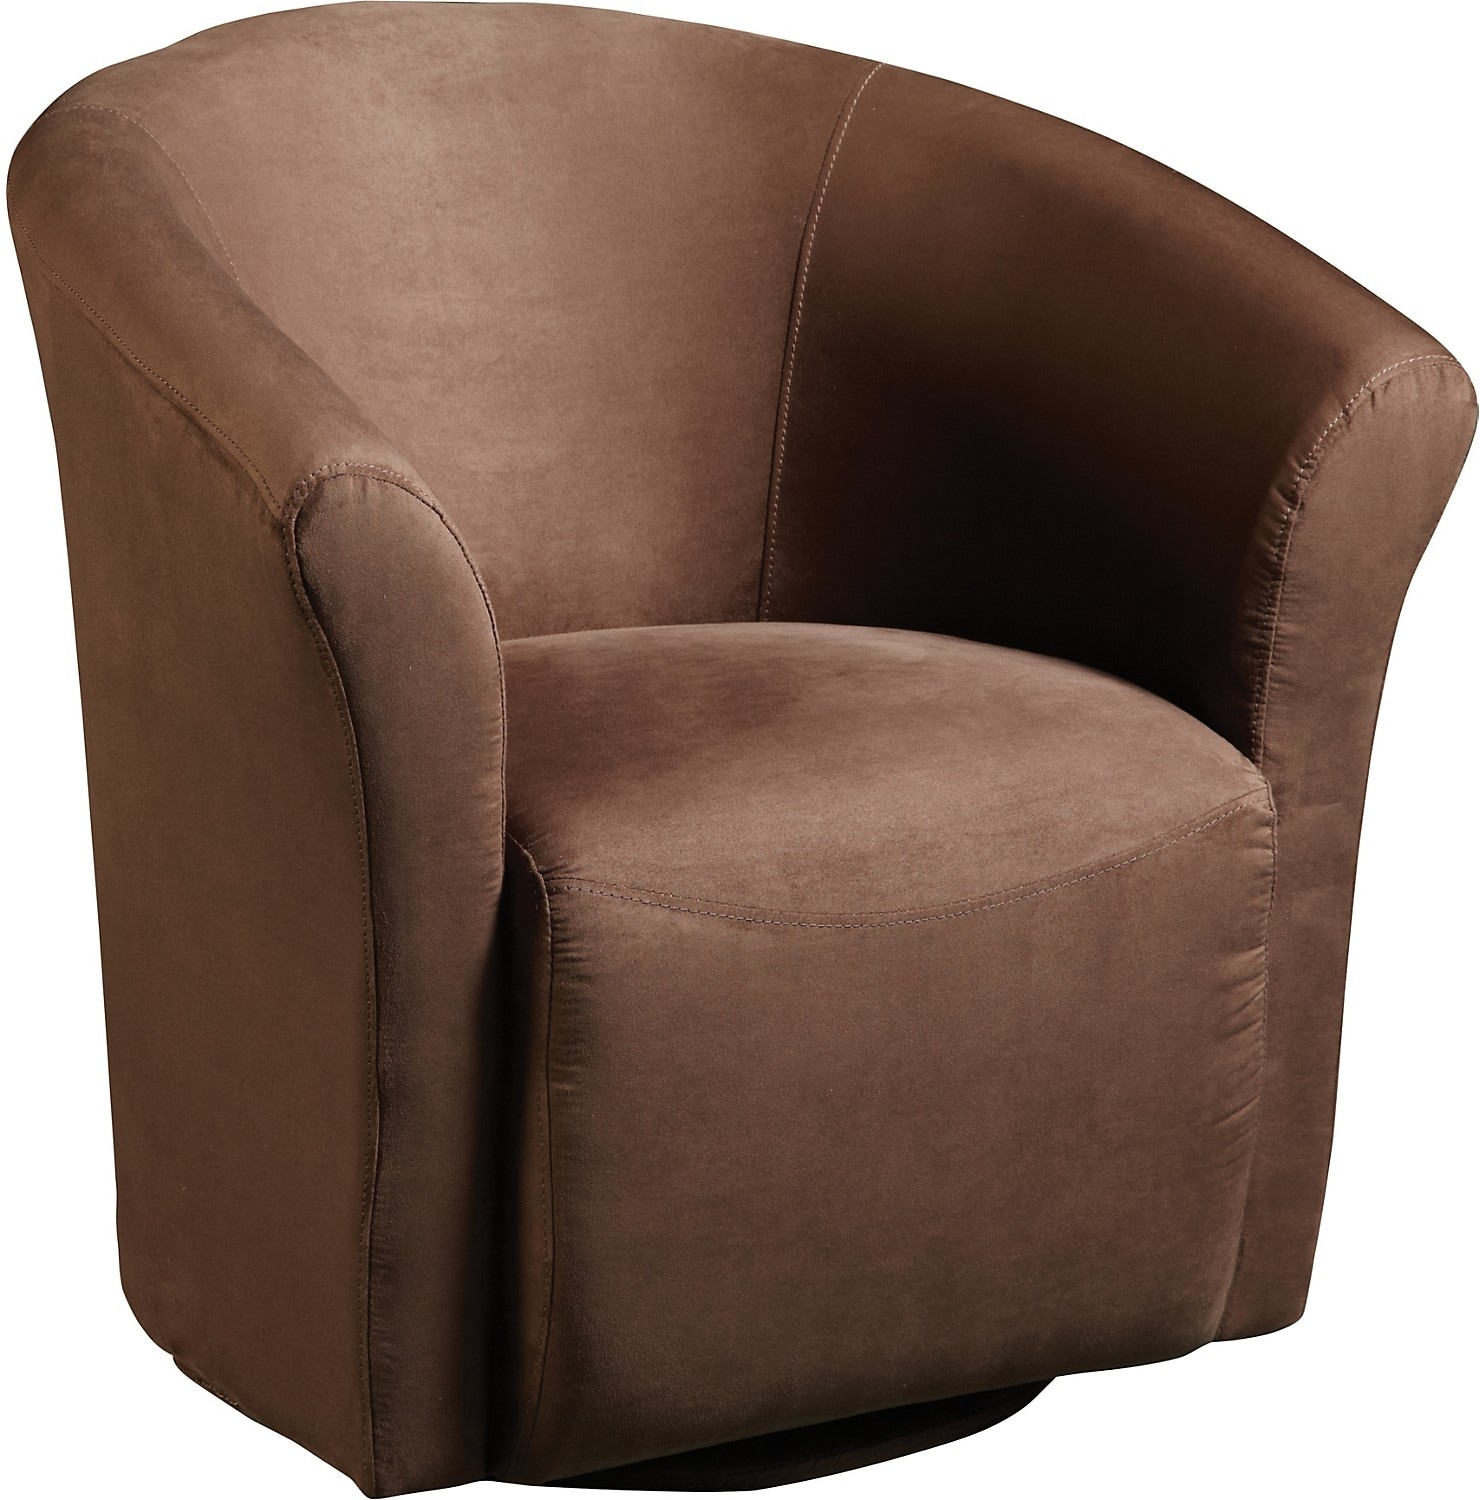 Chocolate Microfibre Swivel Tub Chair